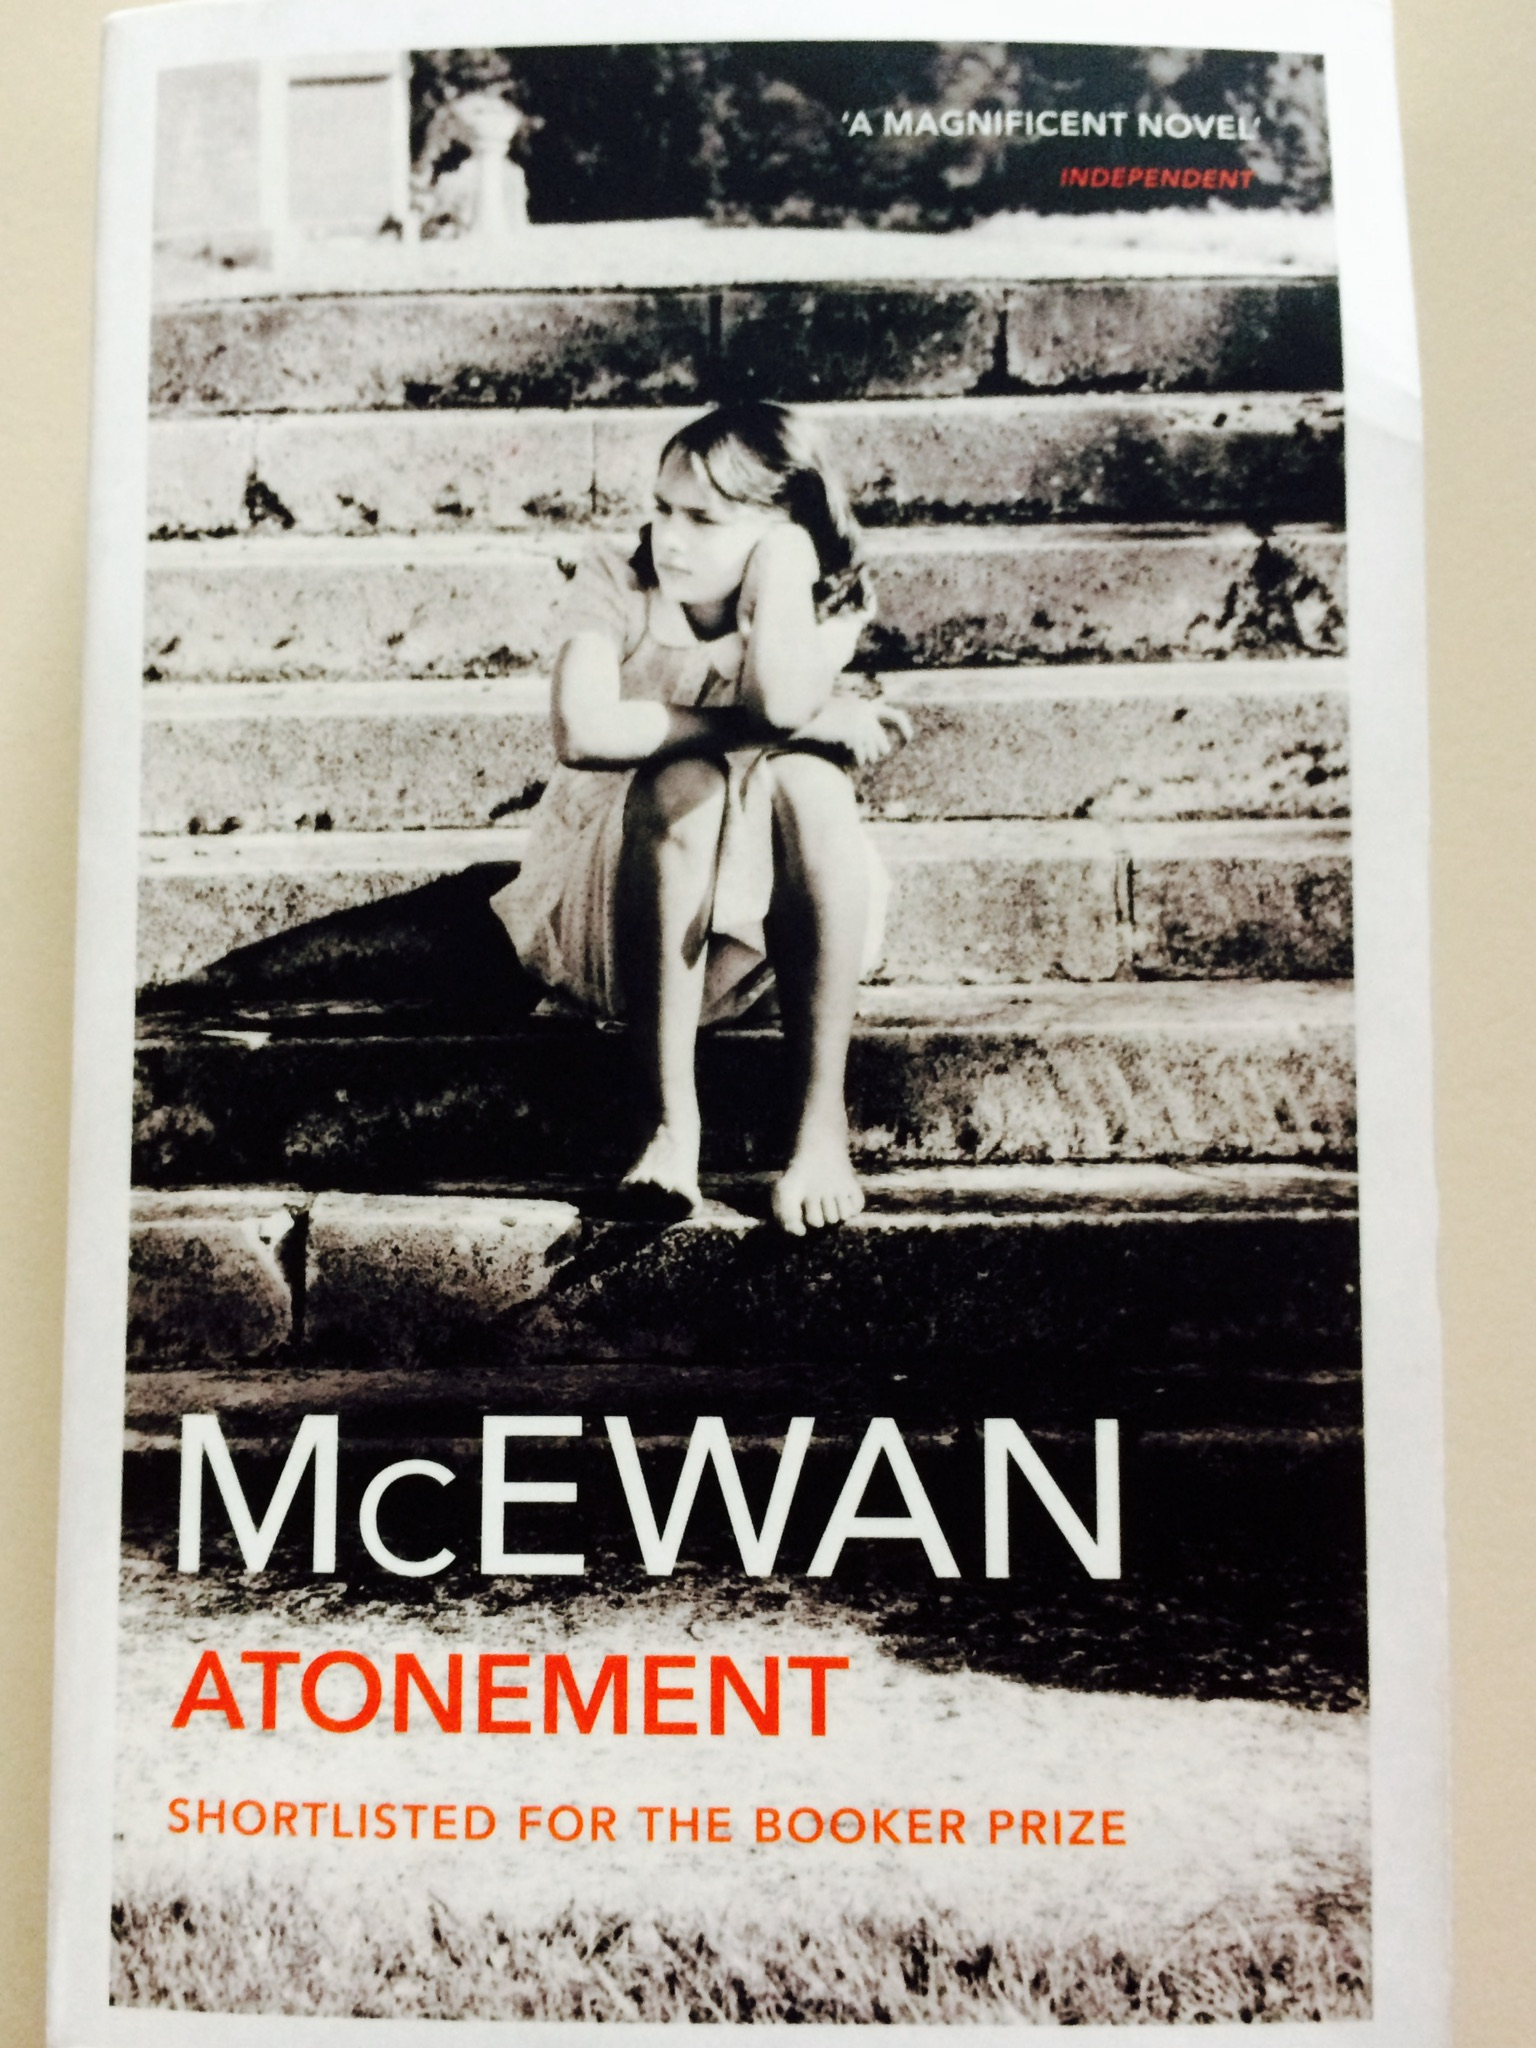 ian mcewan atonement themes Ian russell mcewan cbe frsa frsl  christina (1995), sex and sexuality in ian mcewan's work  bernie c (2006), ian mcewan's 'atonement' and 'saturday.